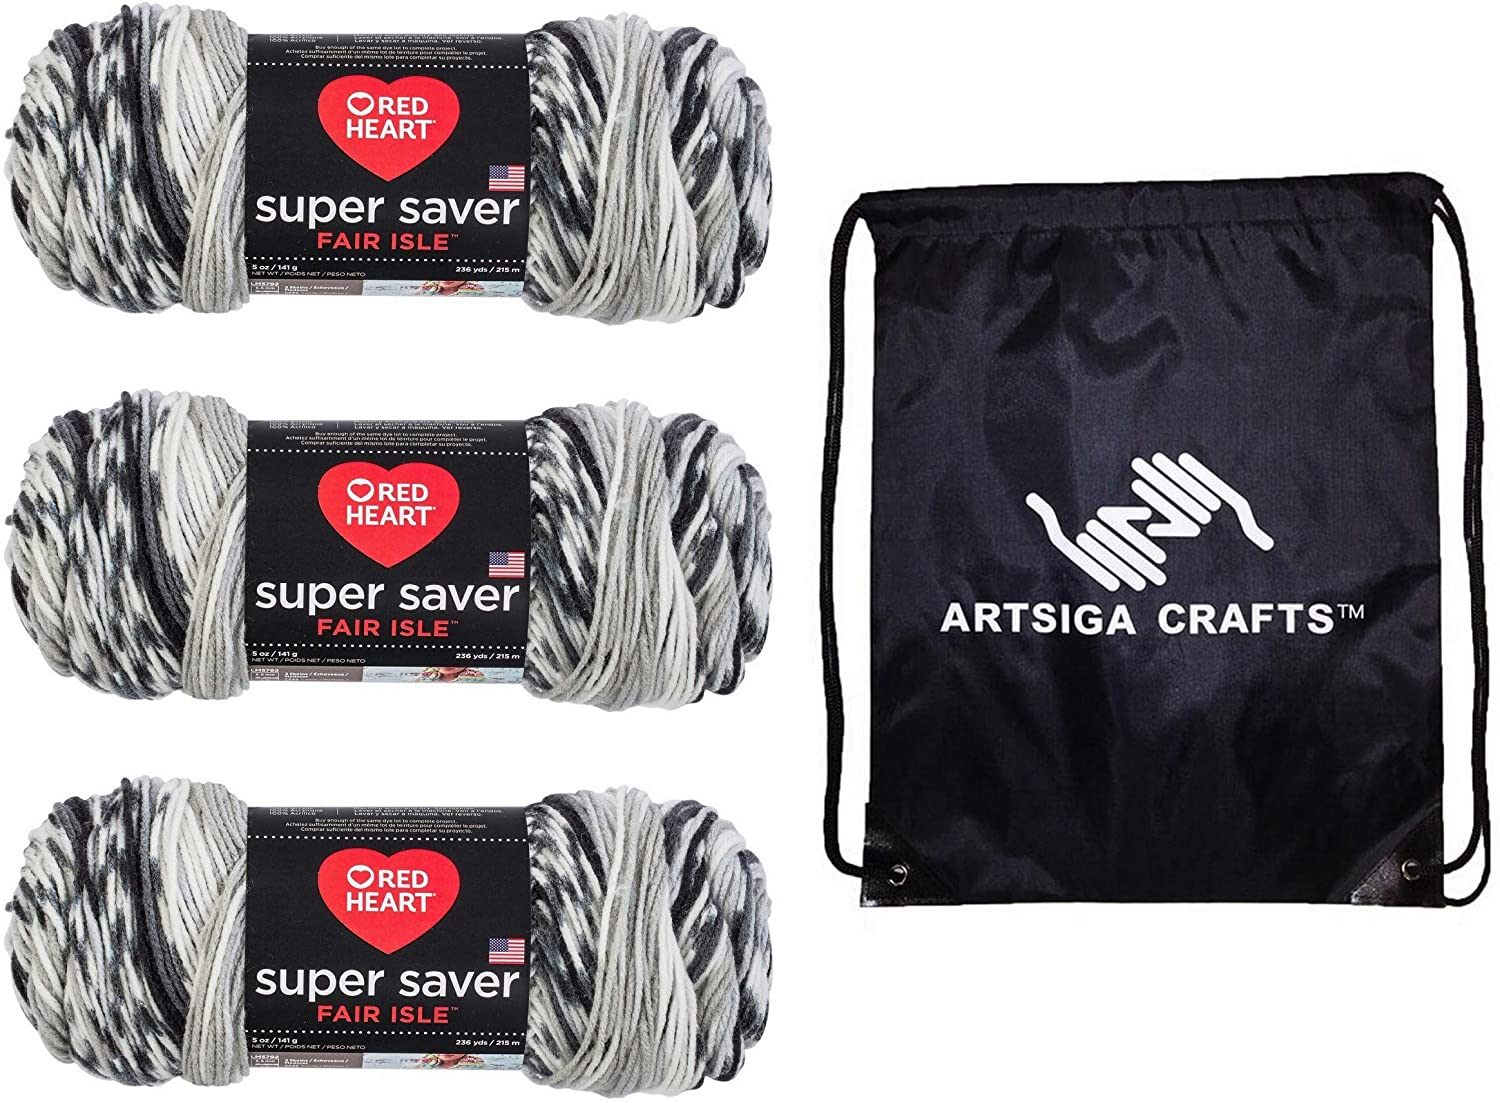 Red Heart Knitting Yarn Super Saver Fair Isle Newspaper 3-Skein Factory Pack (Same Dyelot) E300F-7254 Bundle with 1 Artsiga Crafts Project Bag